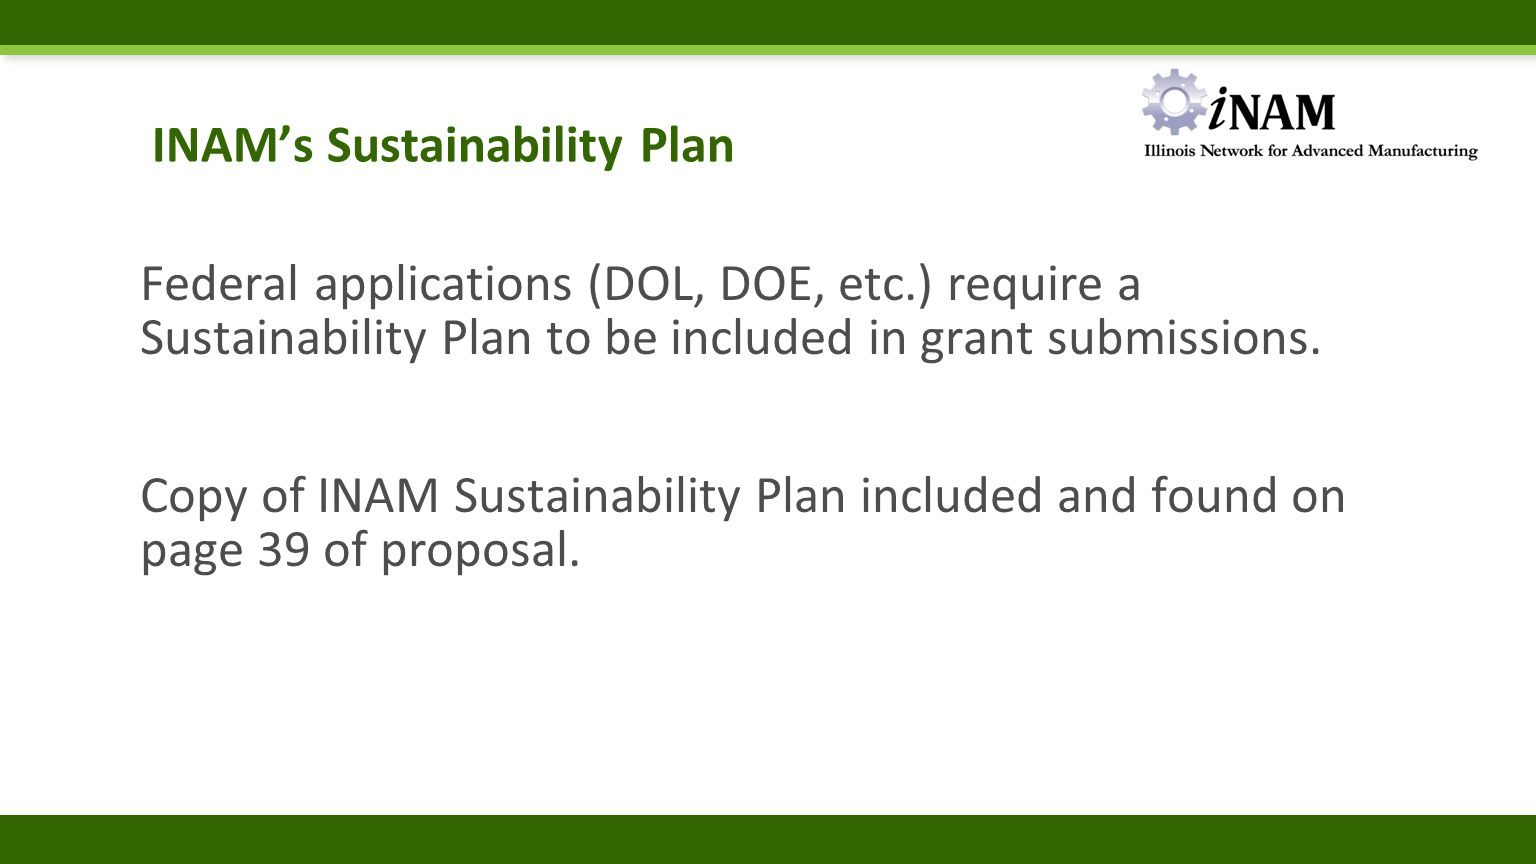 INAM's Sustainability Plan Federal applications (DOL, DOE, etc.) require a Sustainability Plan to be included in grant submissions. Copy of INAM Susta